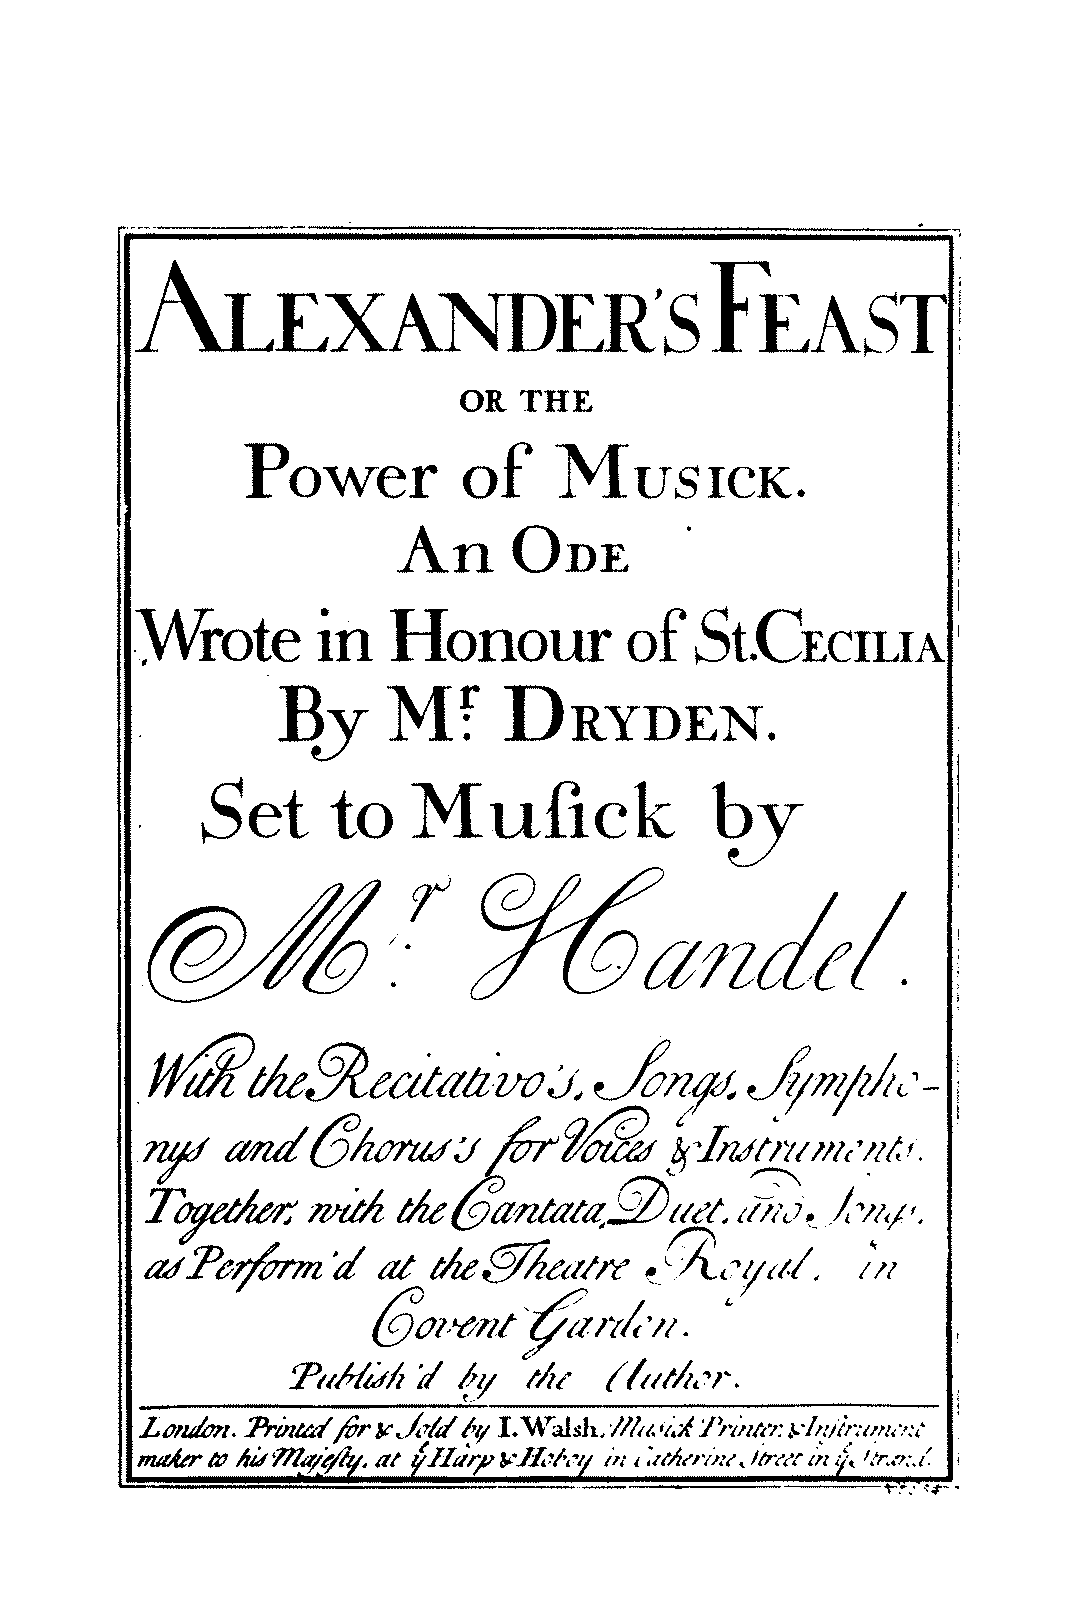 PMLP44401-Handel - Alexander's Feast, or the Power of Musick.pdf